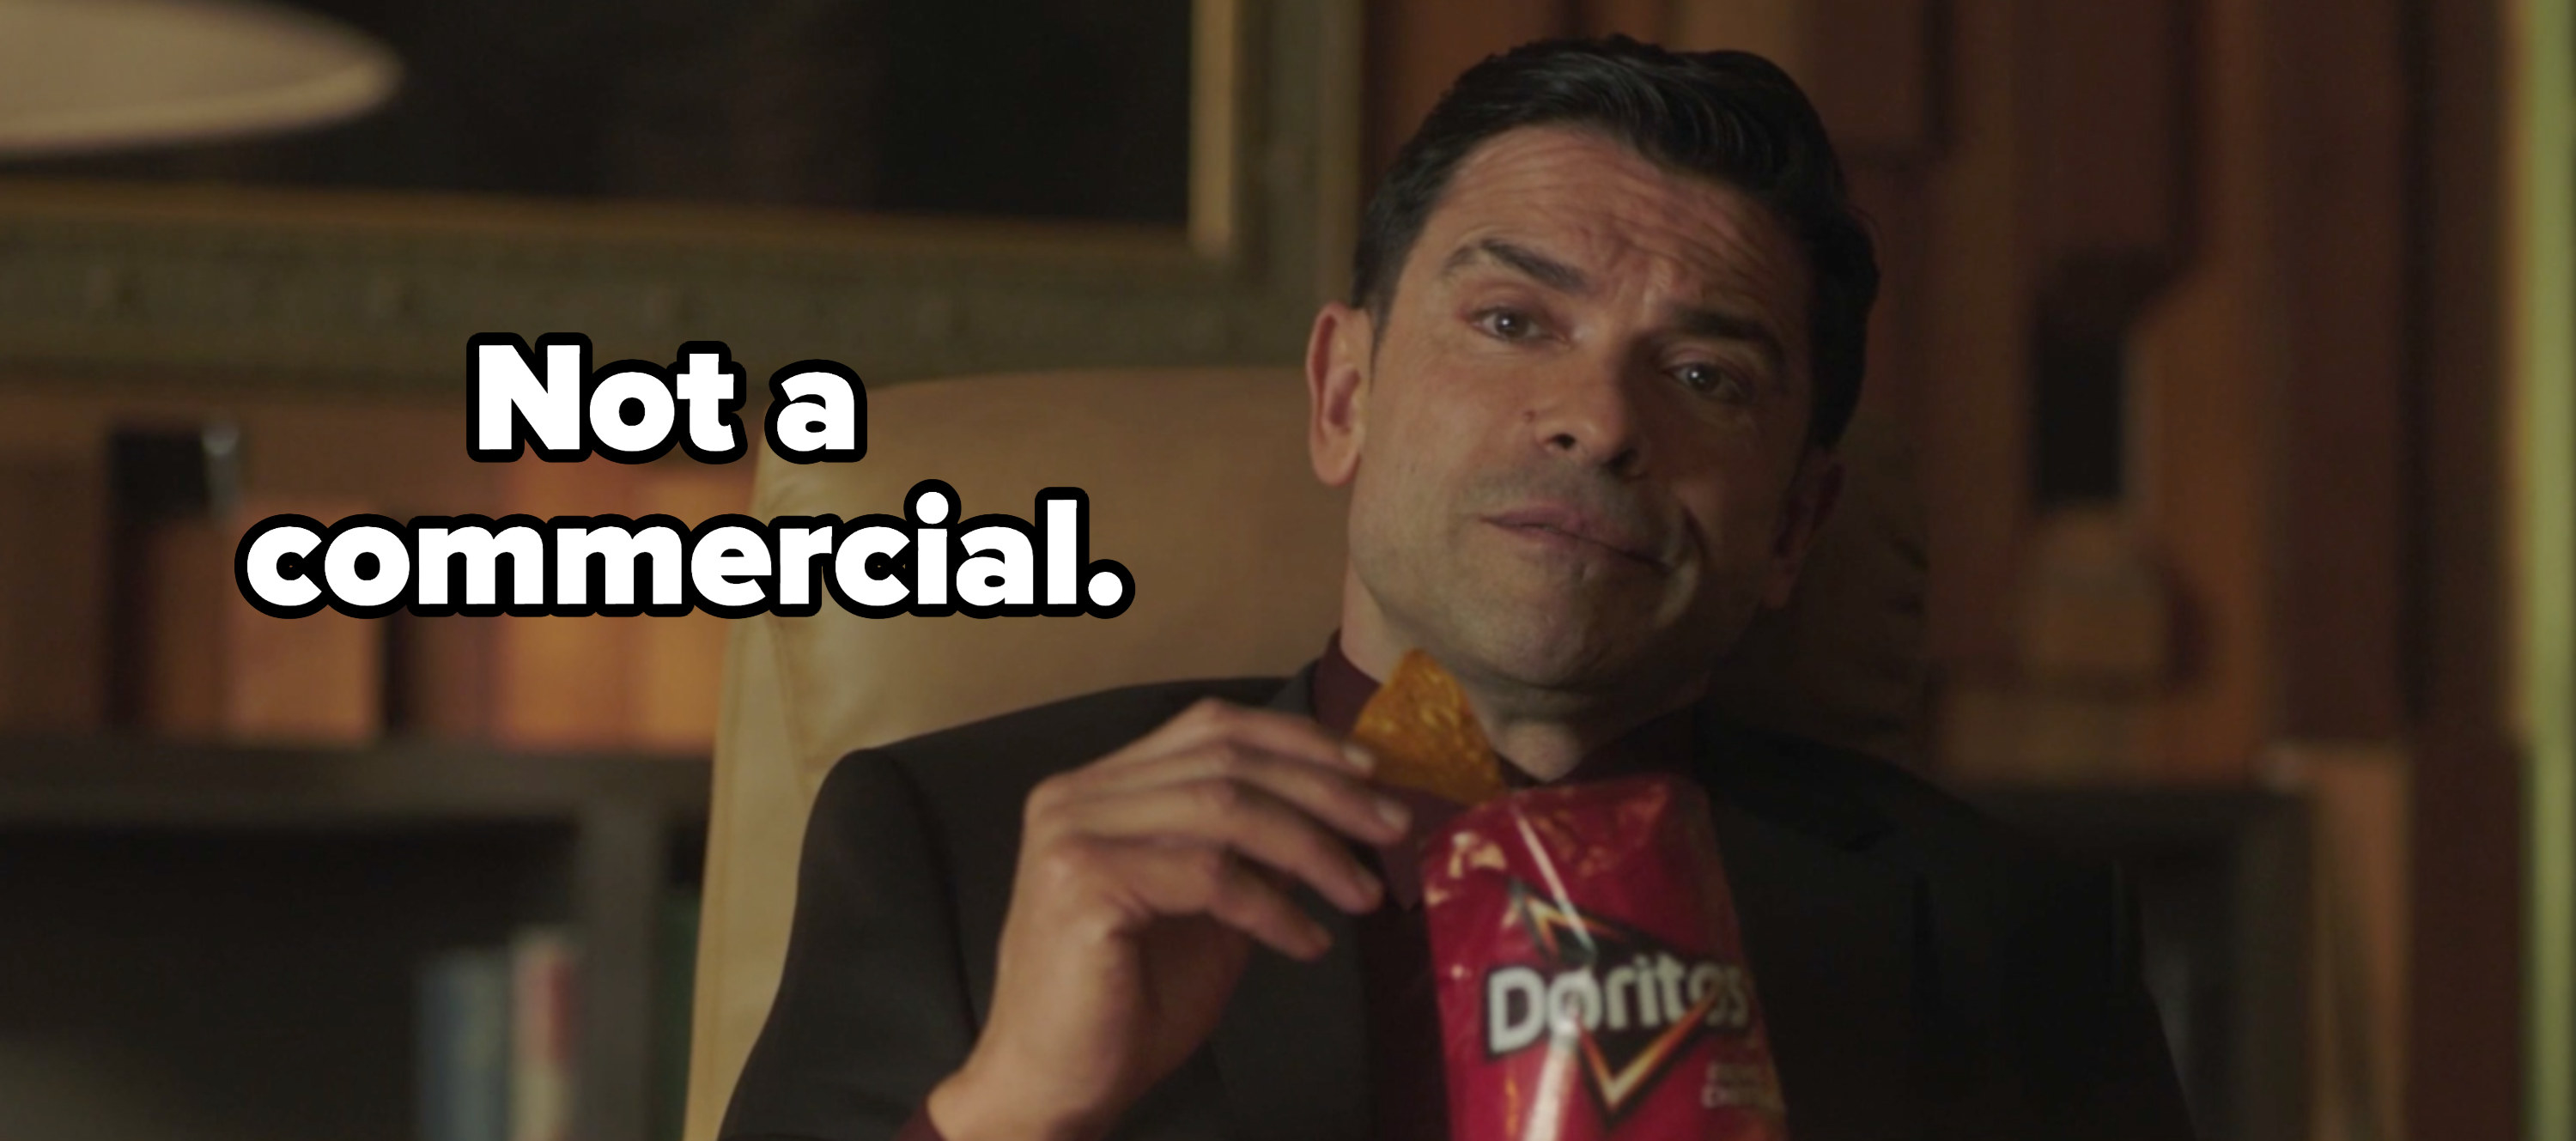 """Hiram eating doritos with the caption """"not a commercial"""""""